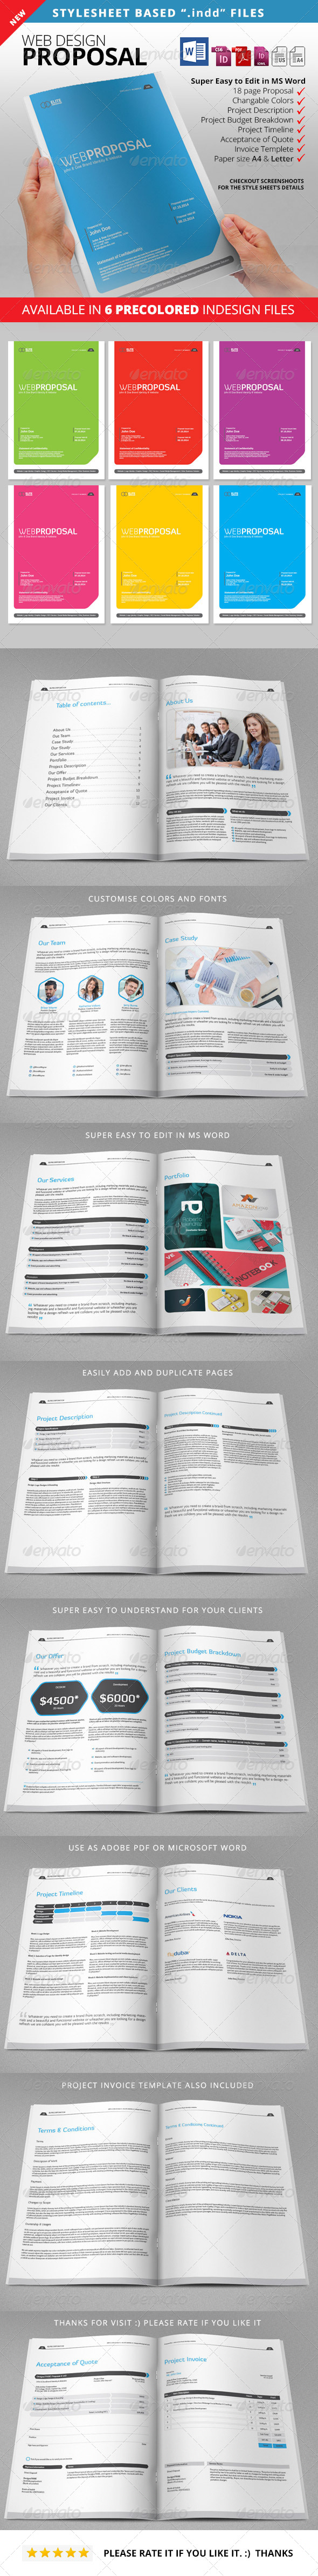 Proposal - Web Proposal - Proposals & Invoices Stationery